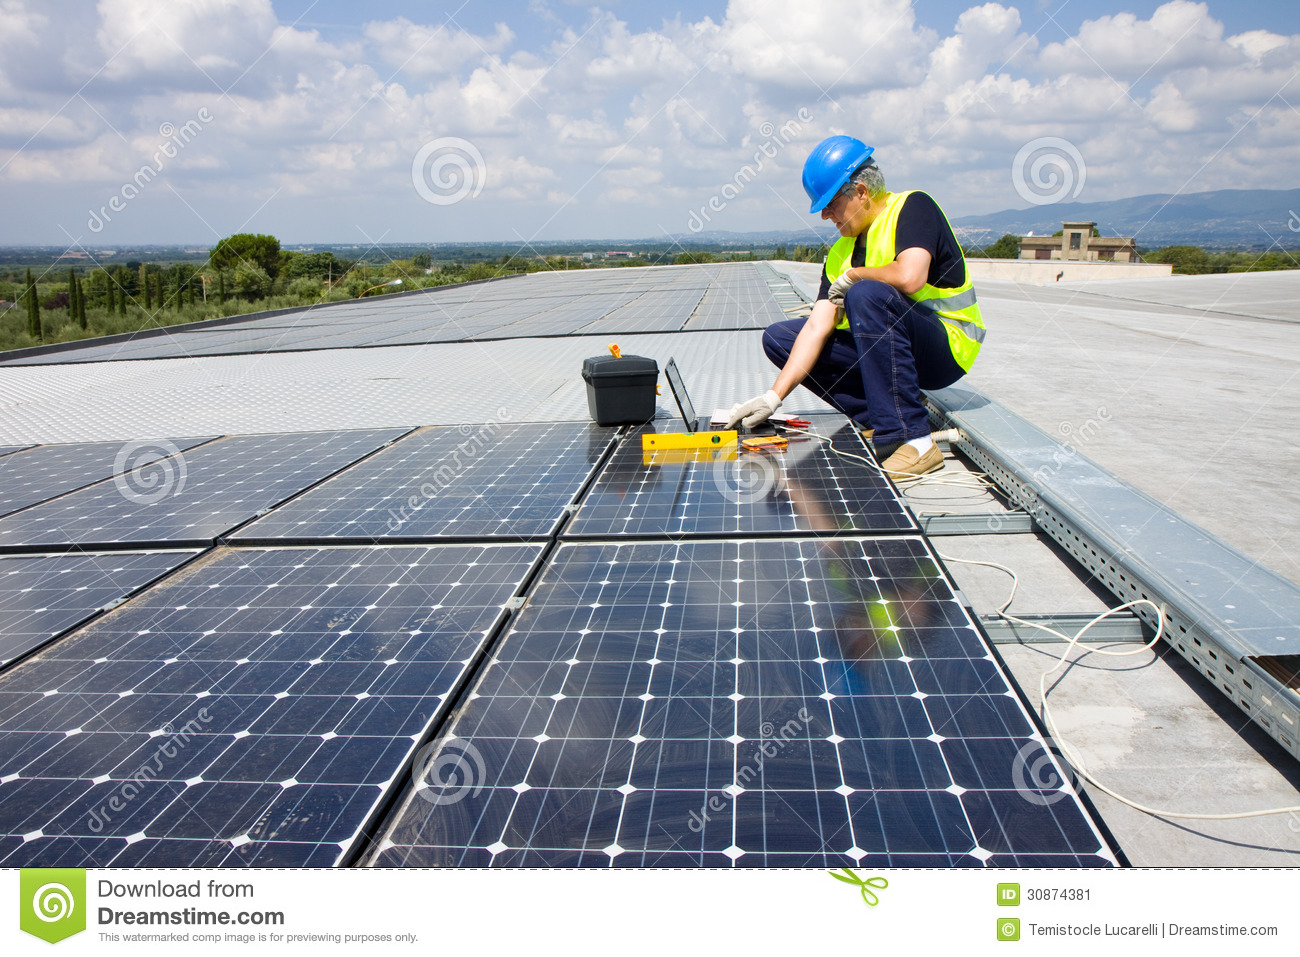 Fitting photovoltaic